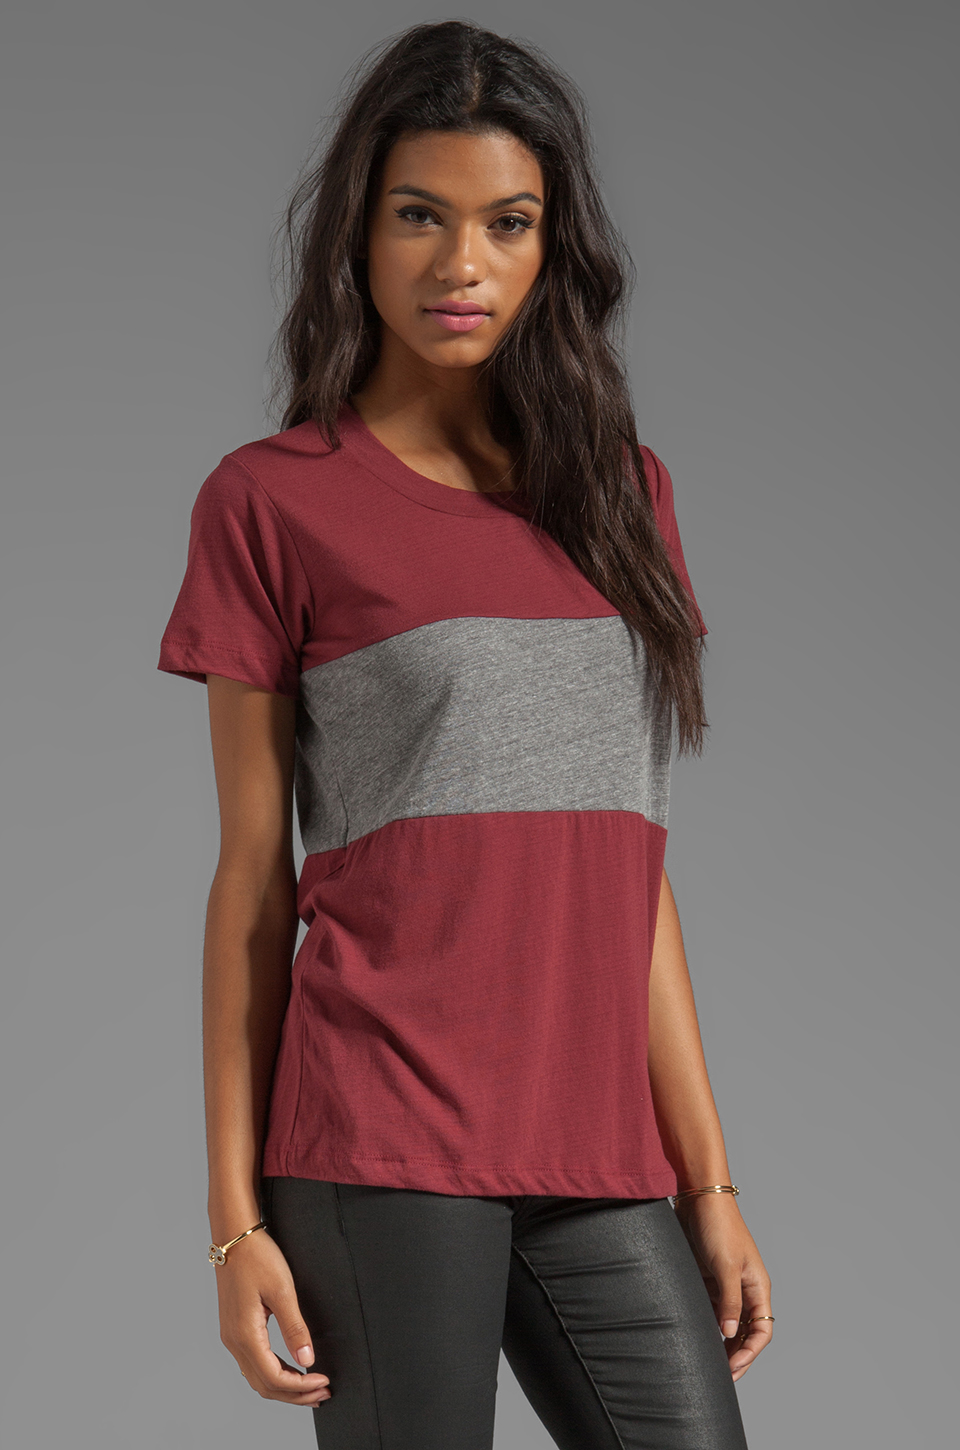 A Fine Line Davy Colorblock Tee in Mulberry/Heather Grey